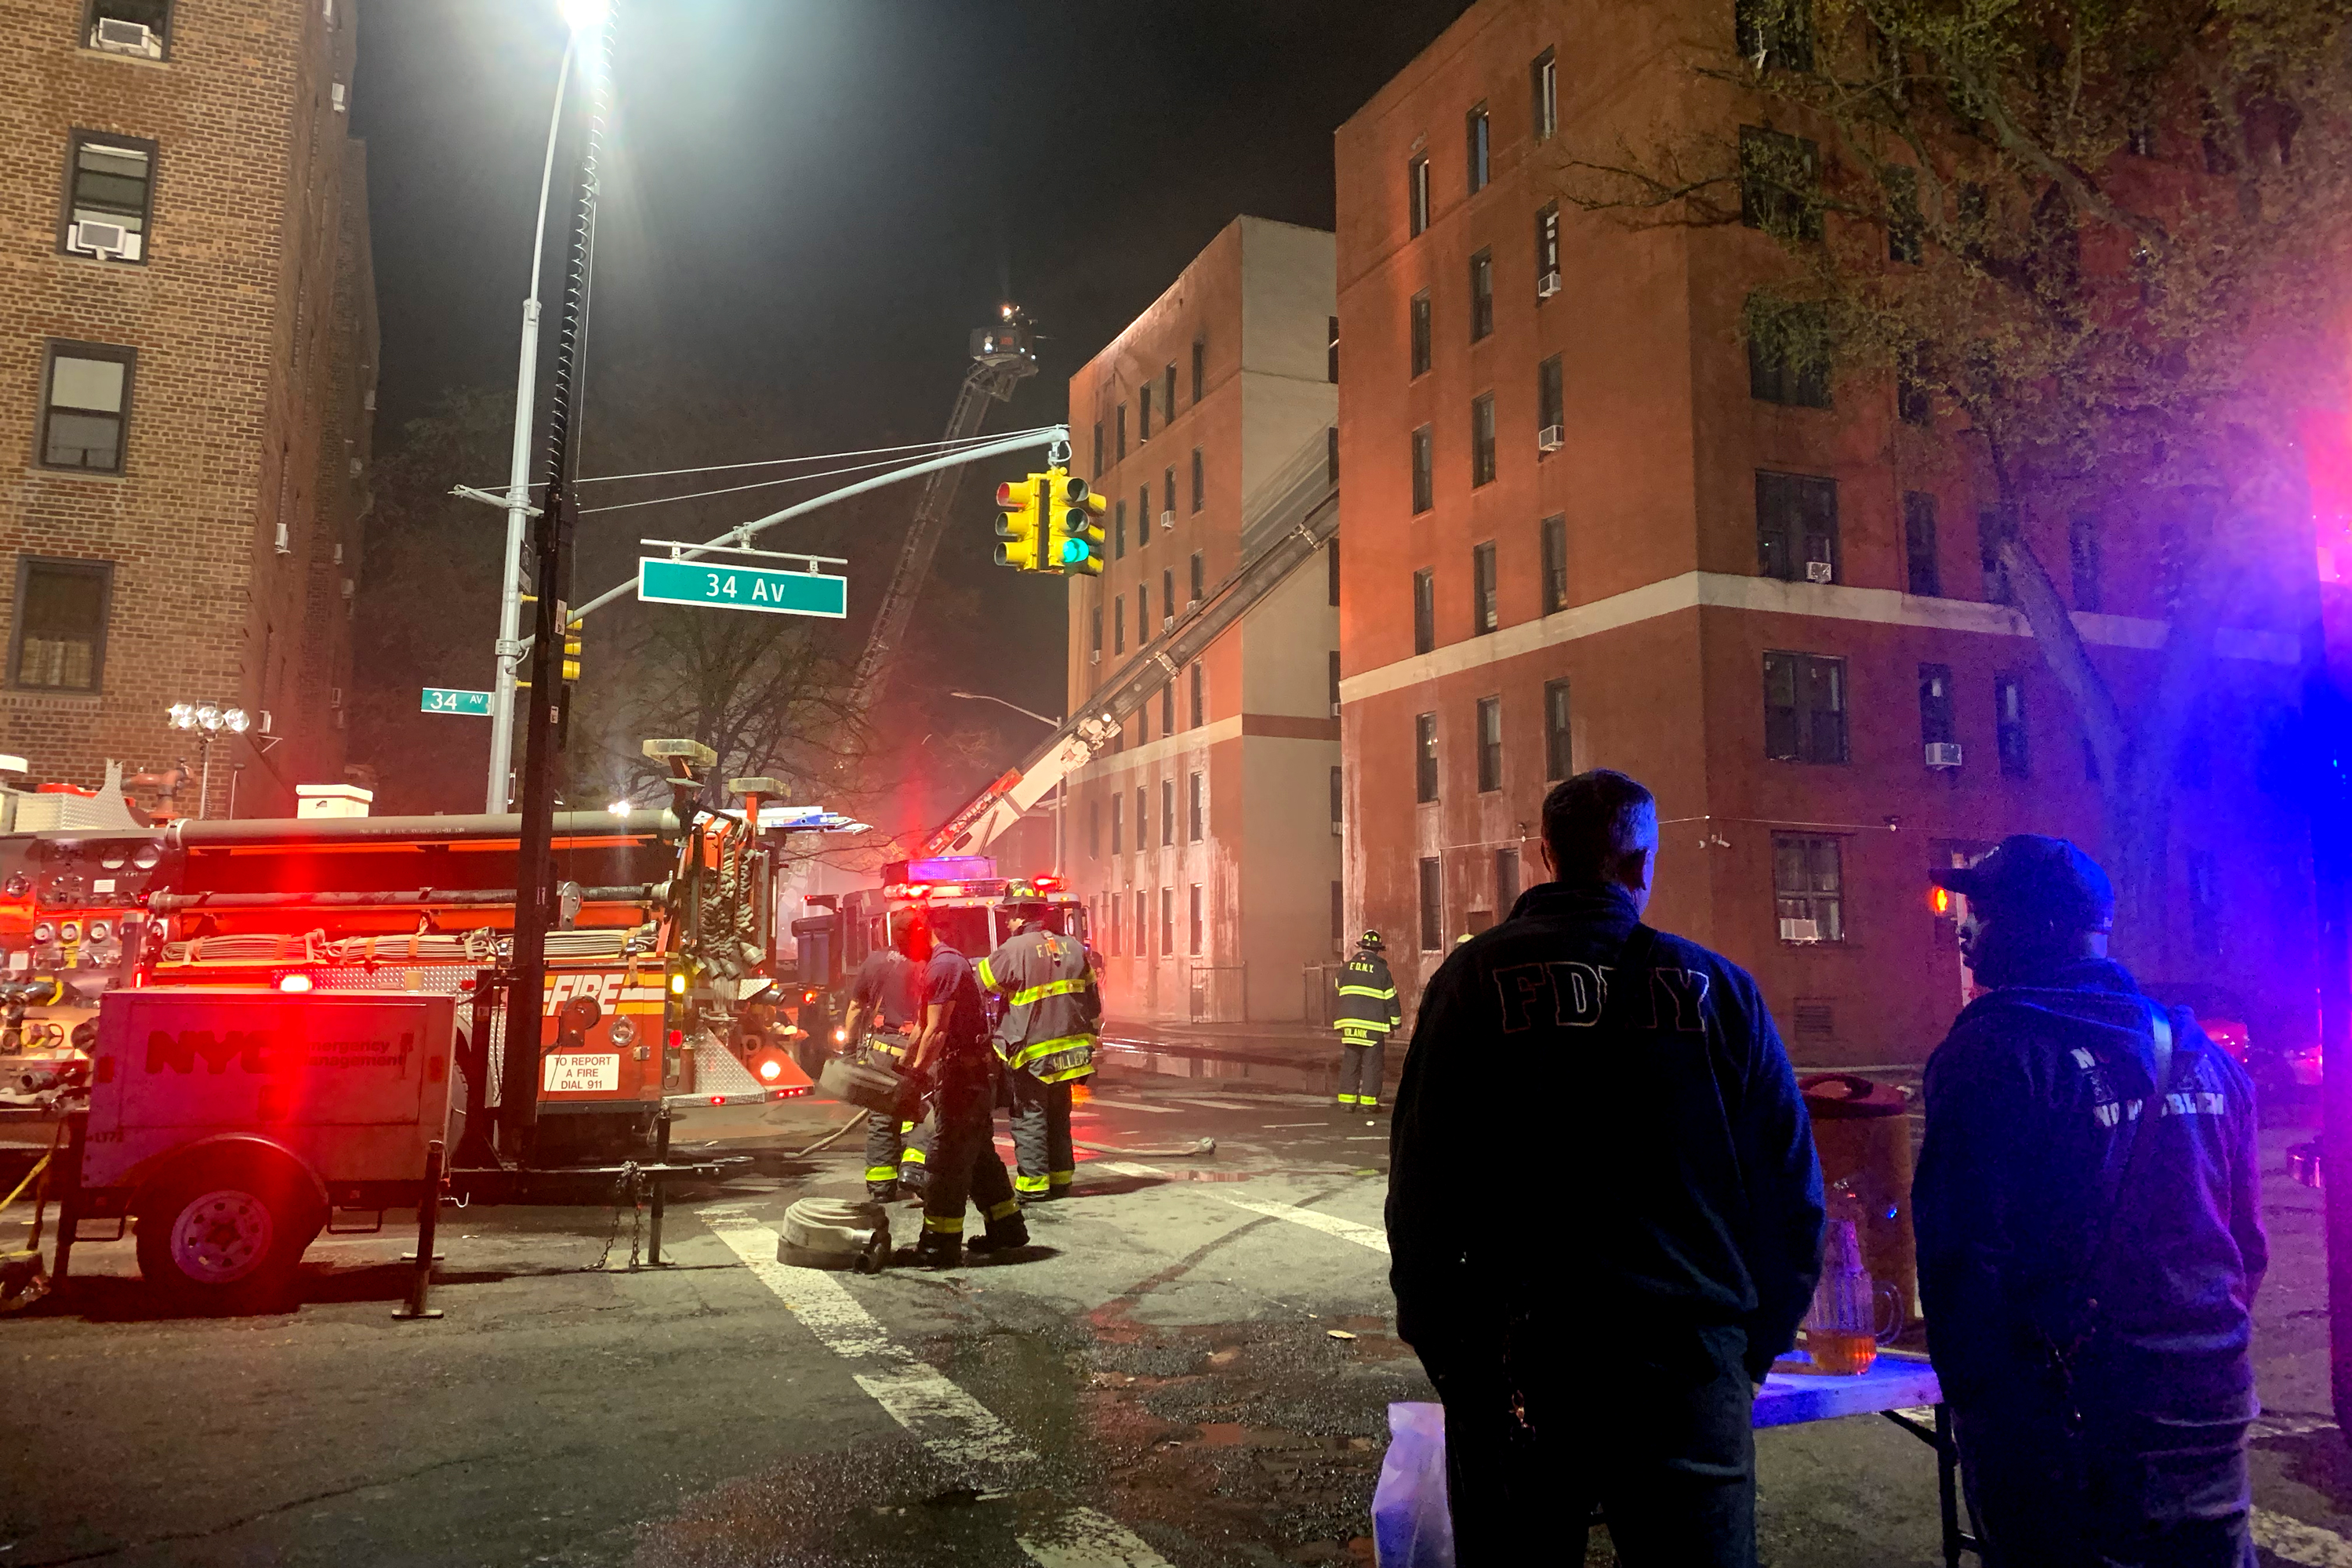 Firefighters at work after residential fire in Jackson Heights, April 2021